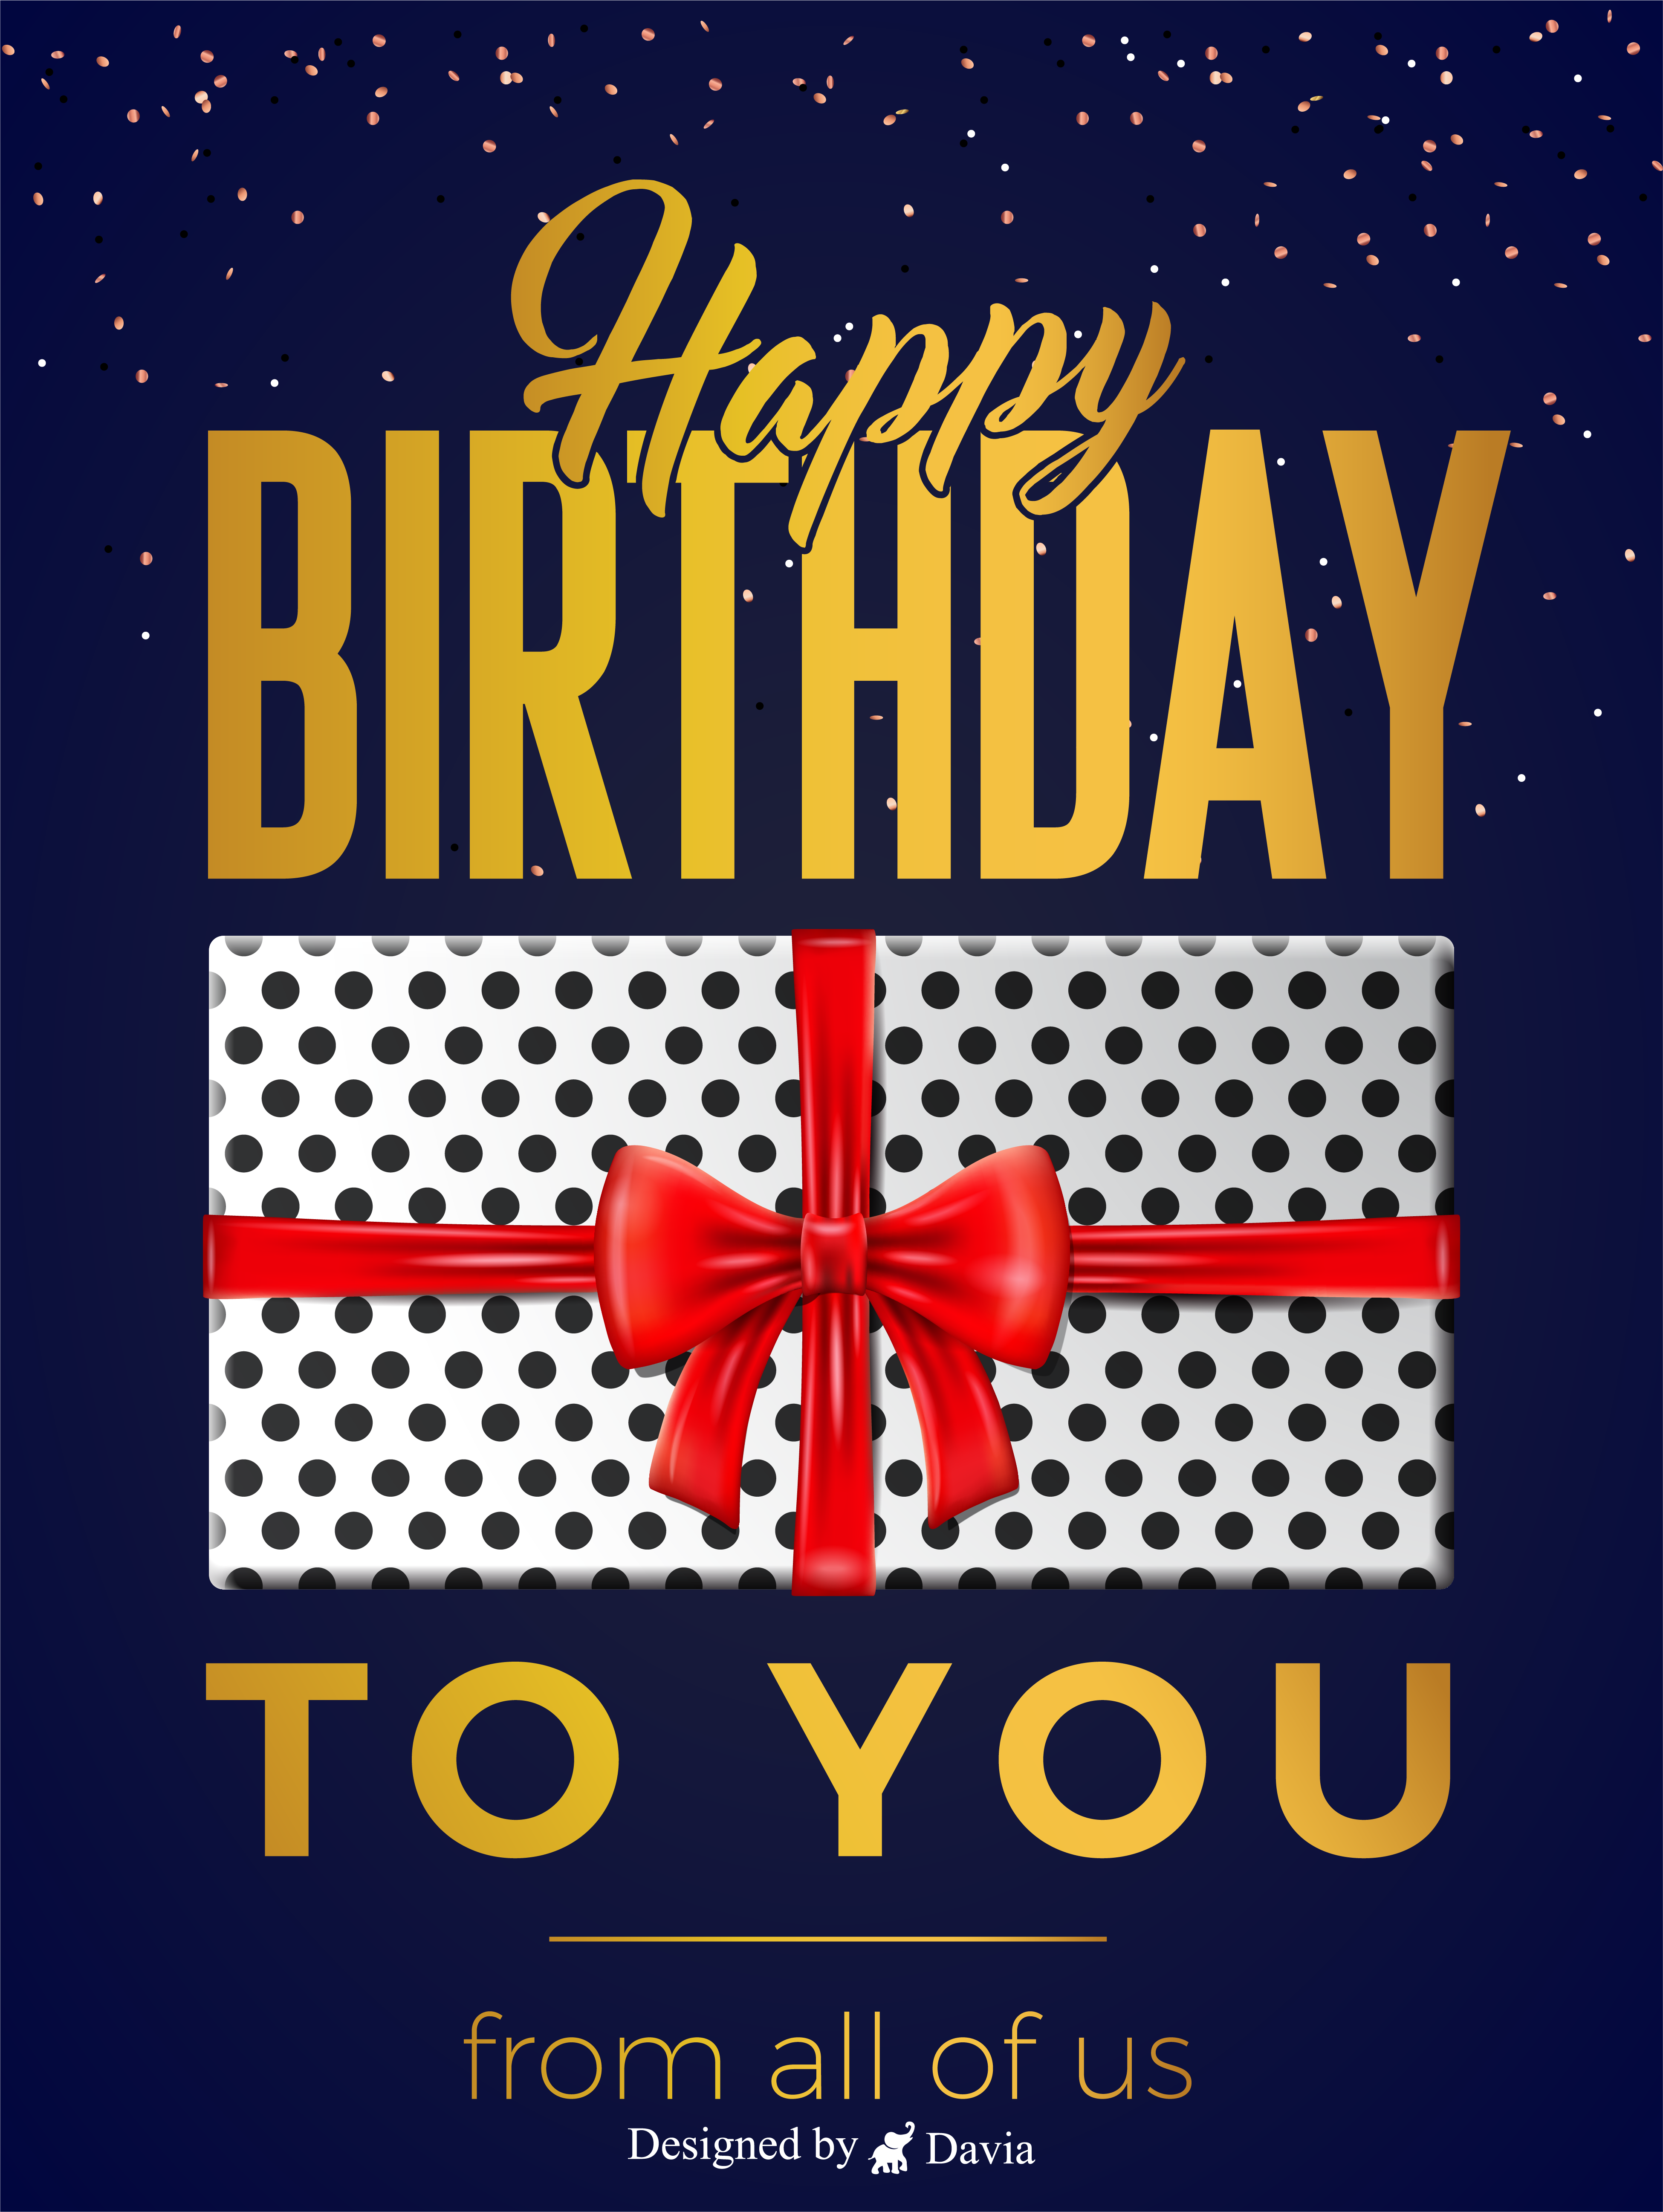 Polkadot And Red Bow Happy Birthday To Him Cards Birthday Greeting Cards By Davia In 2021 Happy Birthday To Him Birthday Cards For Him Birthday Greeting Cards